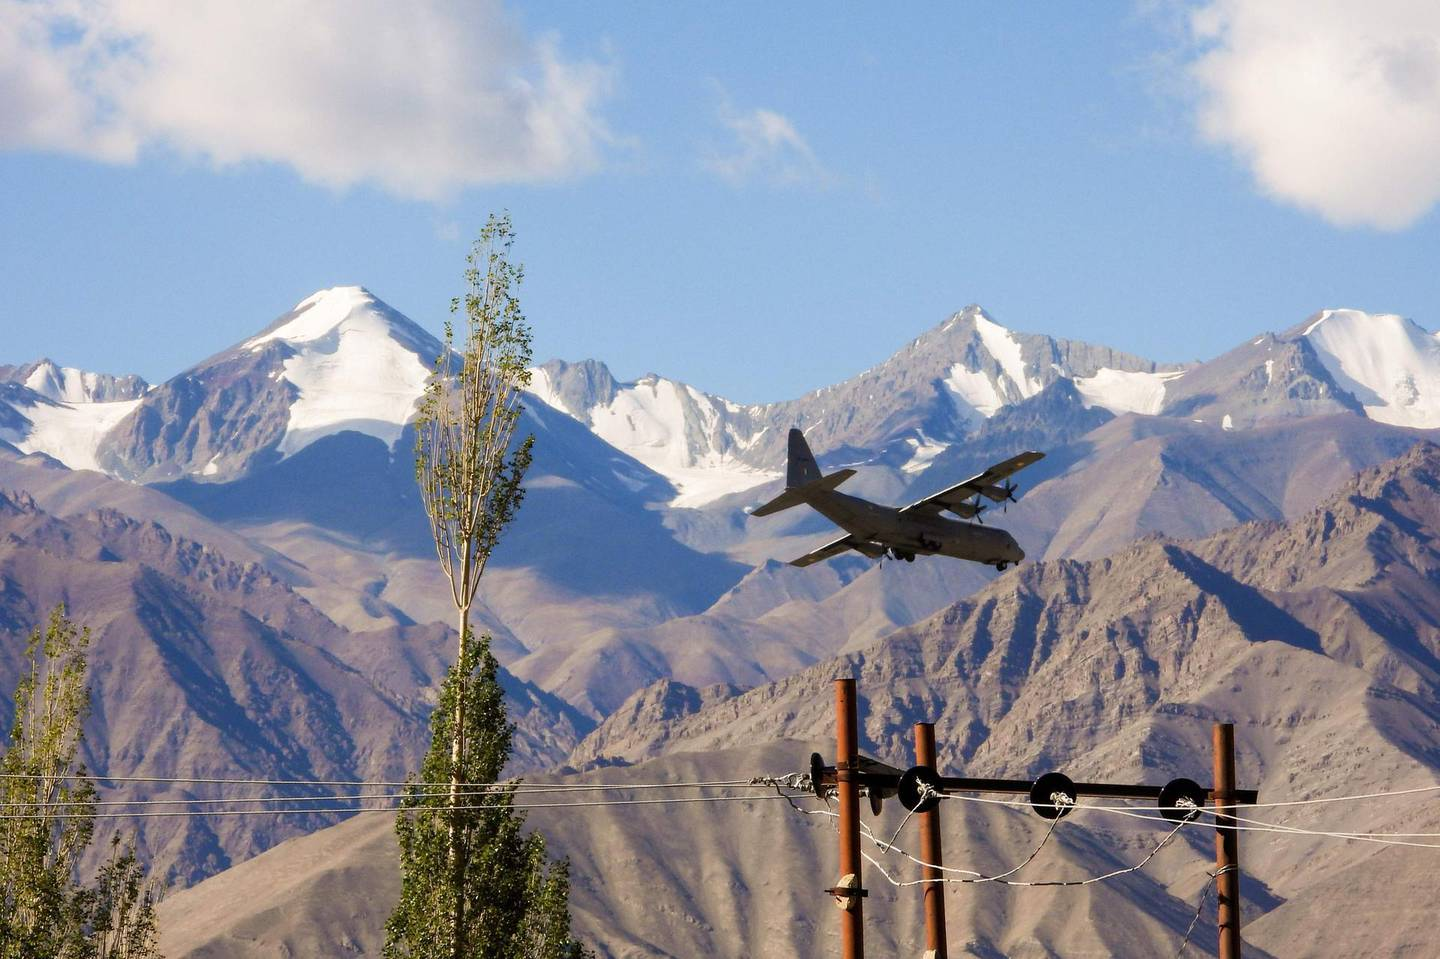 """An Indian Air Force Hercules military transport plane prepares to land at an airbase in Leh, the joint capital of the union territory of Ladakh bordering China, on September 8, 2020. China on September 8 said its troops were forced to take """"countermeasures"""" after Indian soldiers crossed their tense Himalayan border and opened fire. The relationship between the two nuclear-armed neighbours has deteriorated since a clash in the Ladakh region on June 15 in which 20 Indian troops were killed. / AFP / Mohd Arhaan ARCHER"""